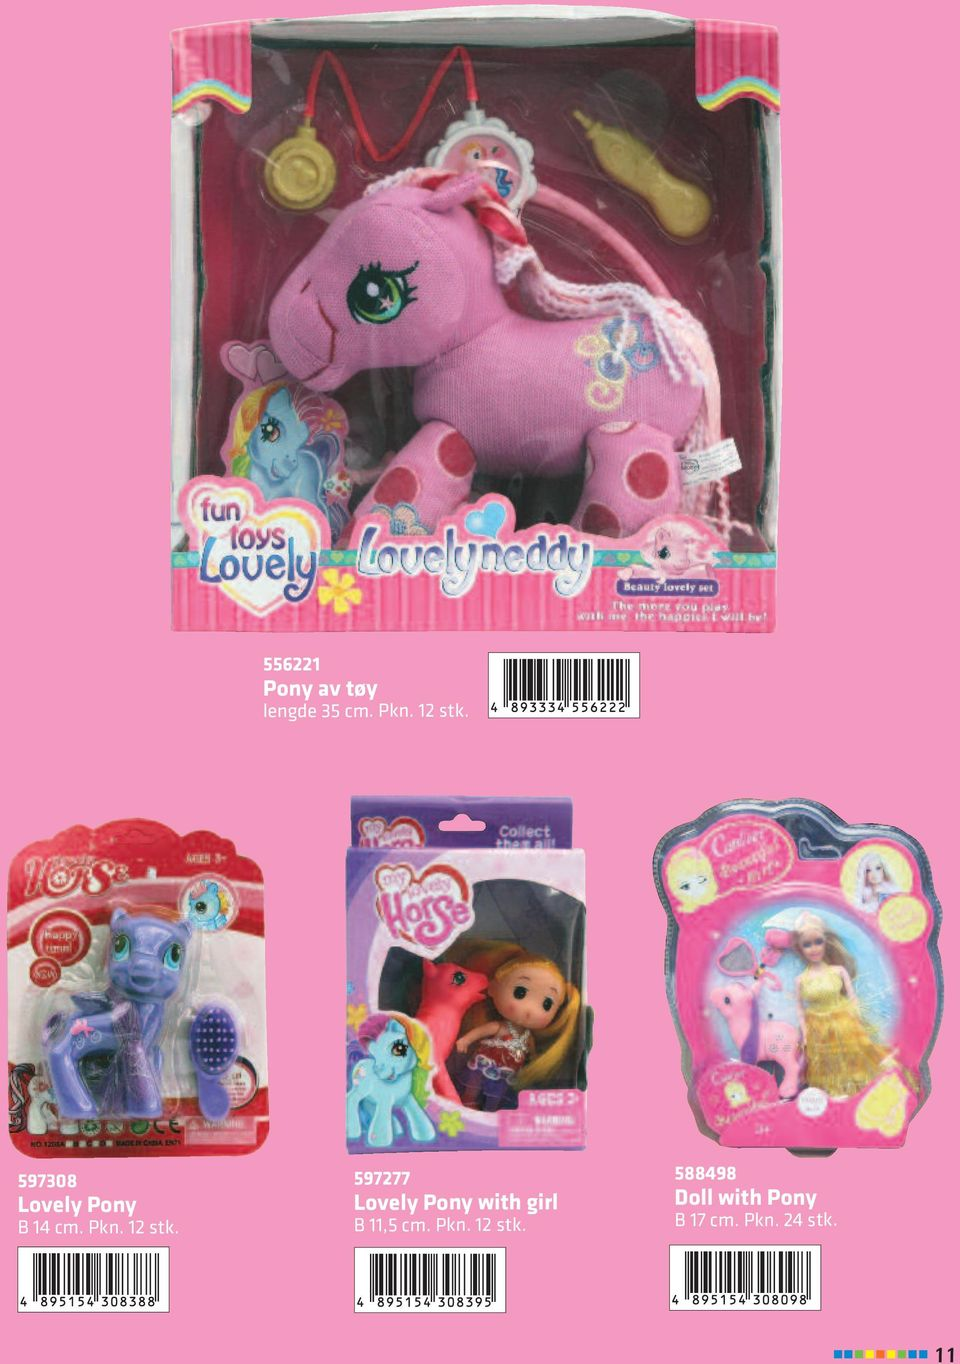 597277 Lovely Pony with girl B 11,5 cm.